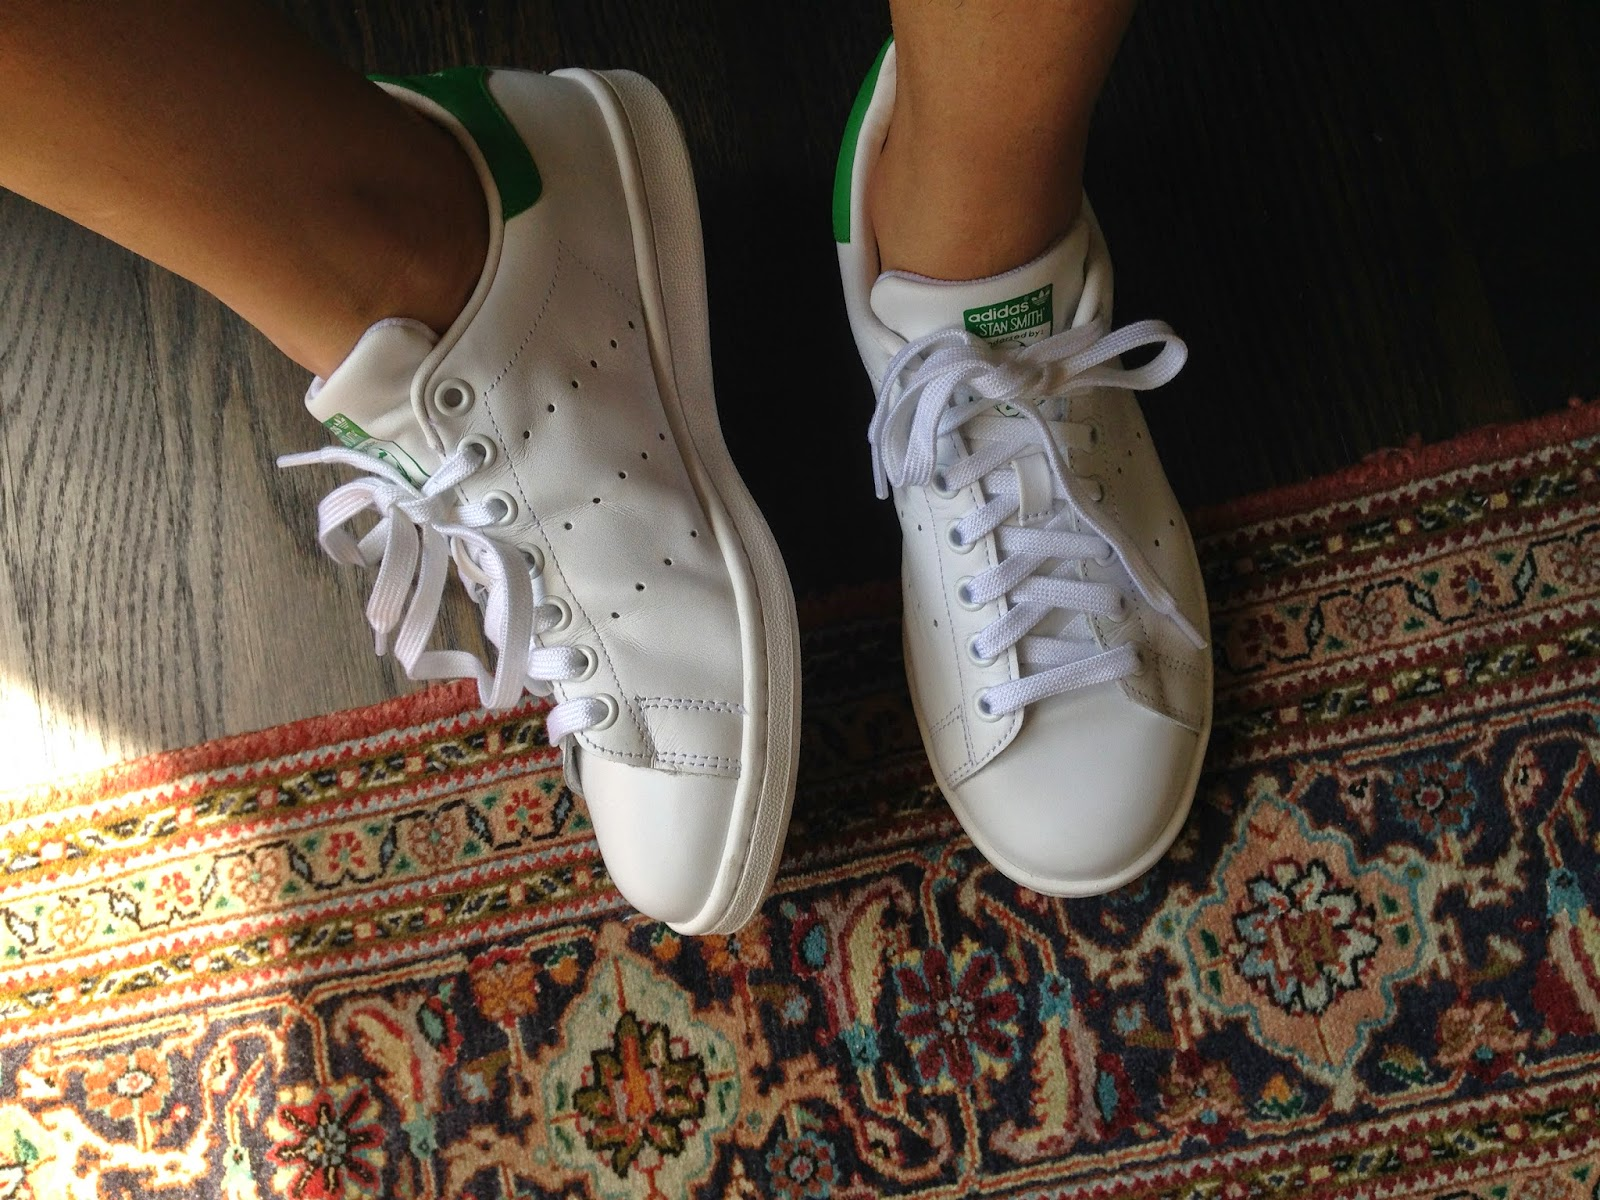 low priced ce621 8375d Adidas Superstar Vs Stan Smith Sizing herbusinessuk.co.uk